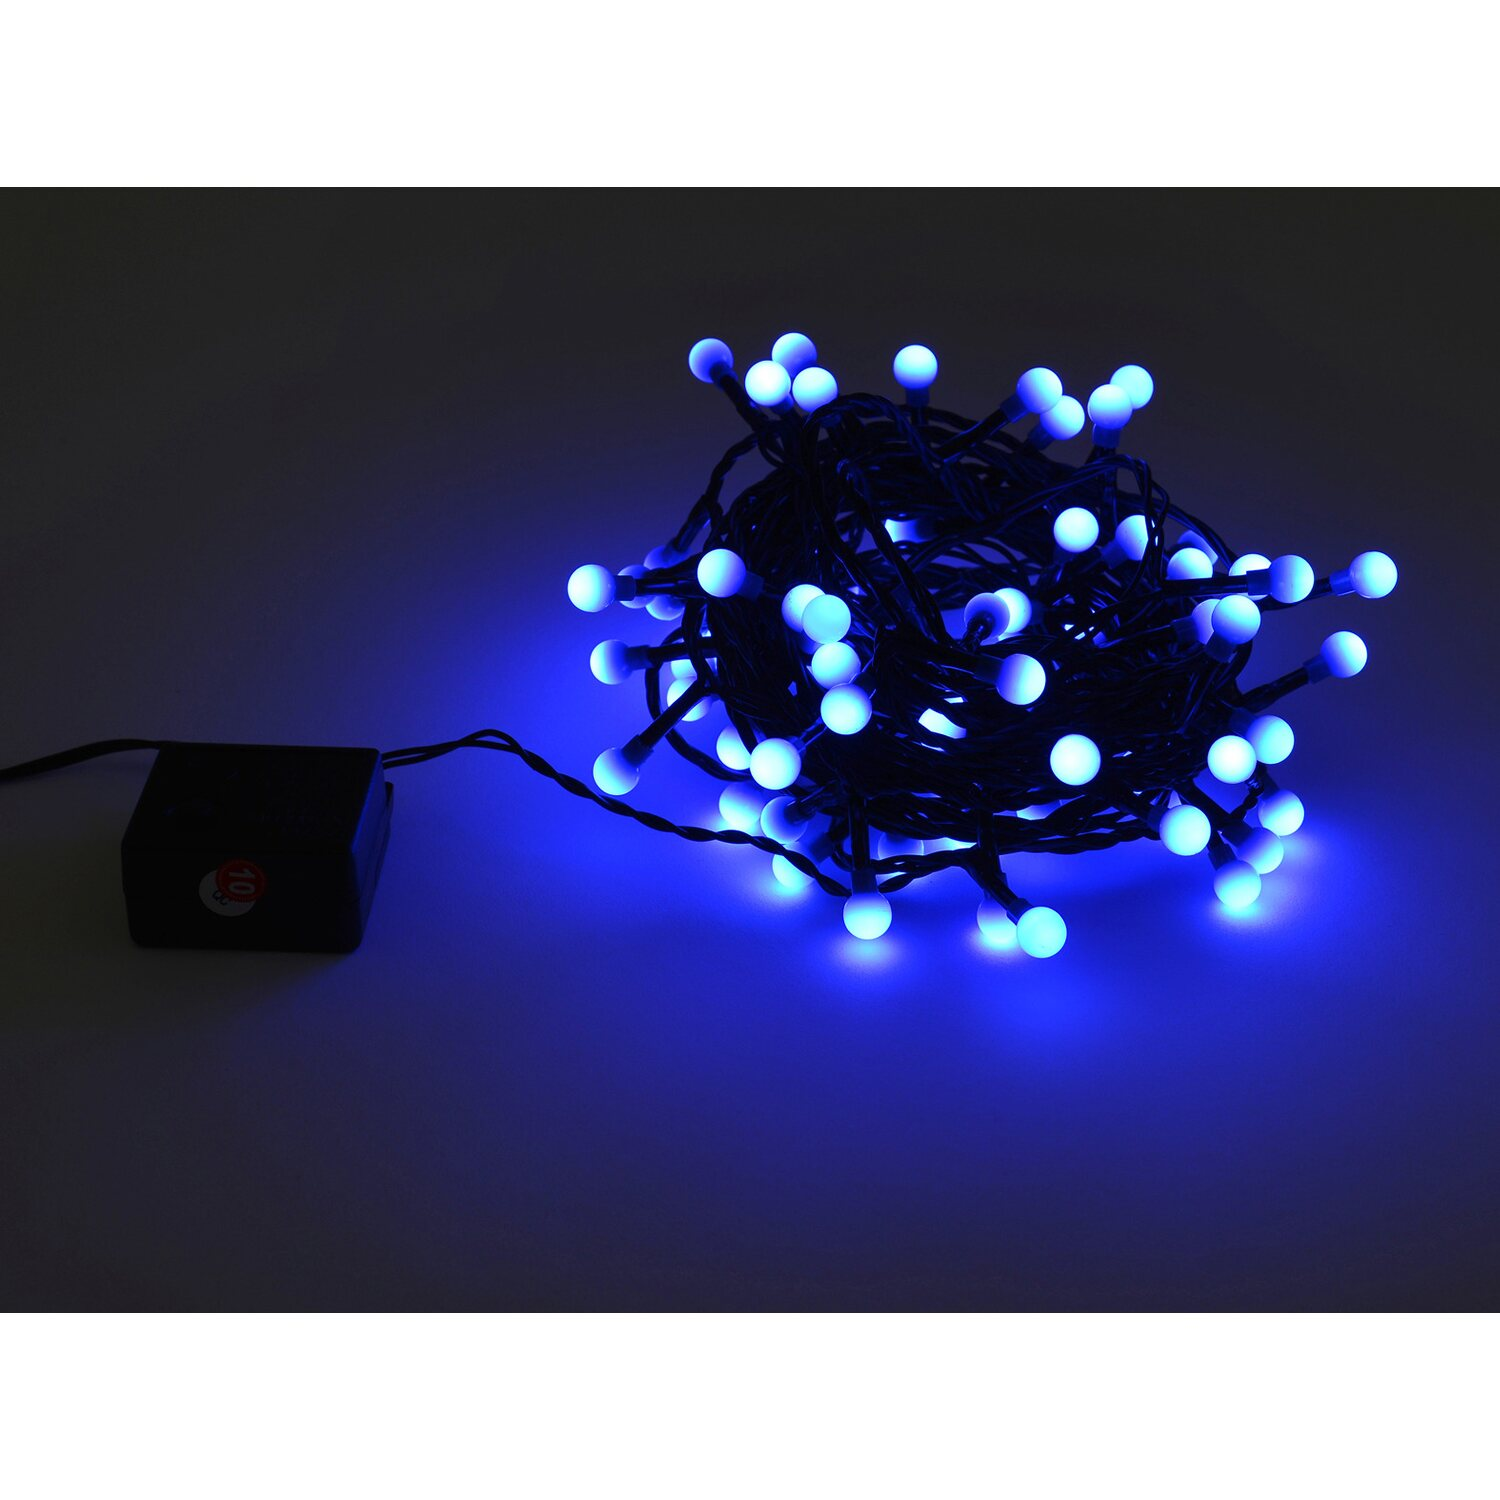 takasho lichterkette berry mit 80 led blau kaufen bei obi. Black Bedroom Furniture Sets. Home Design Ideas